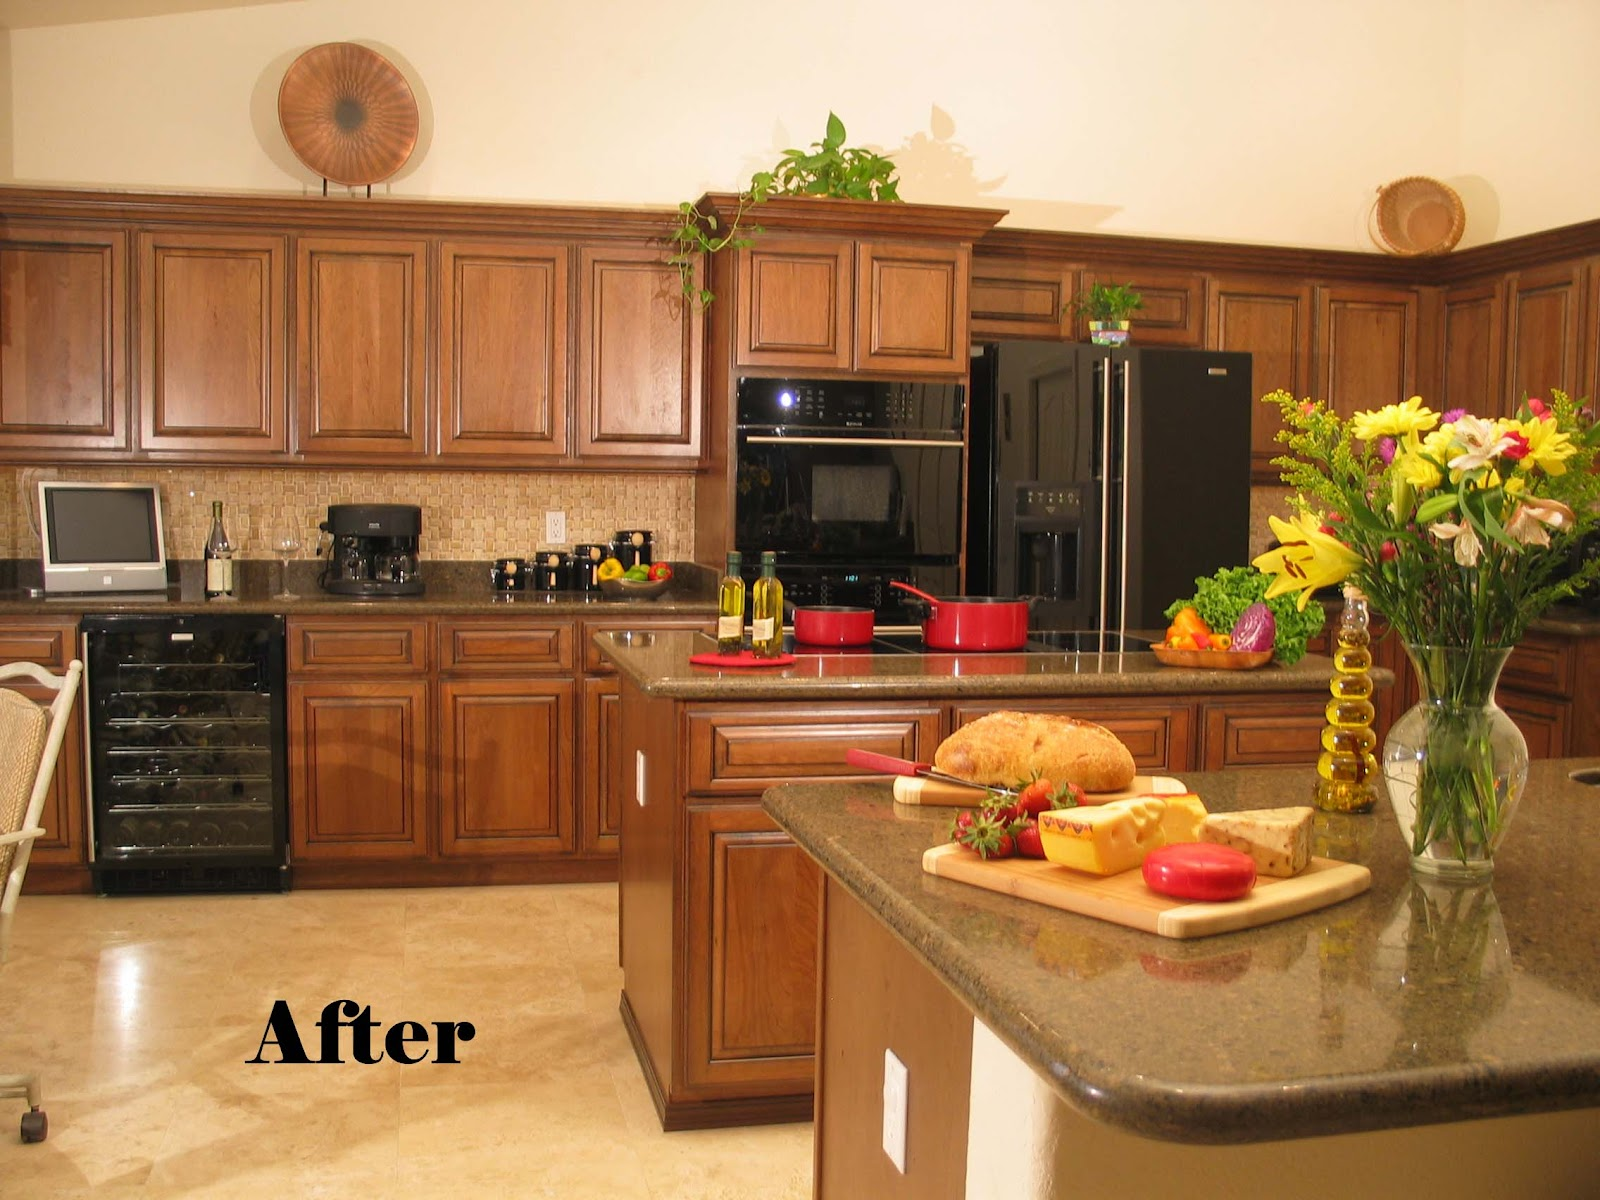 Resurfaced Kitchen Cabinets Before And After Kitchen Cabinet Refacing 2017 Grasscloth Wallpaper